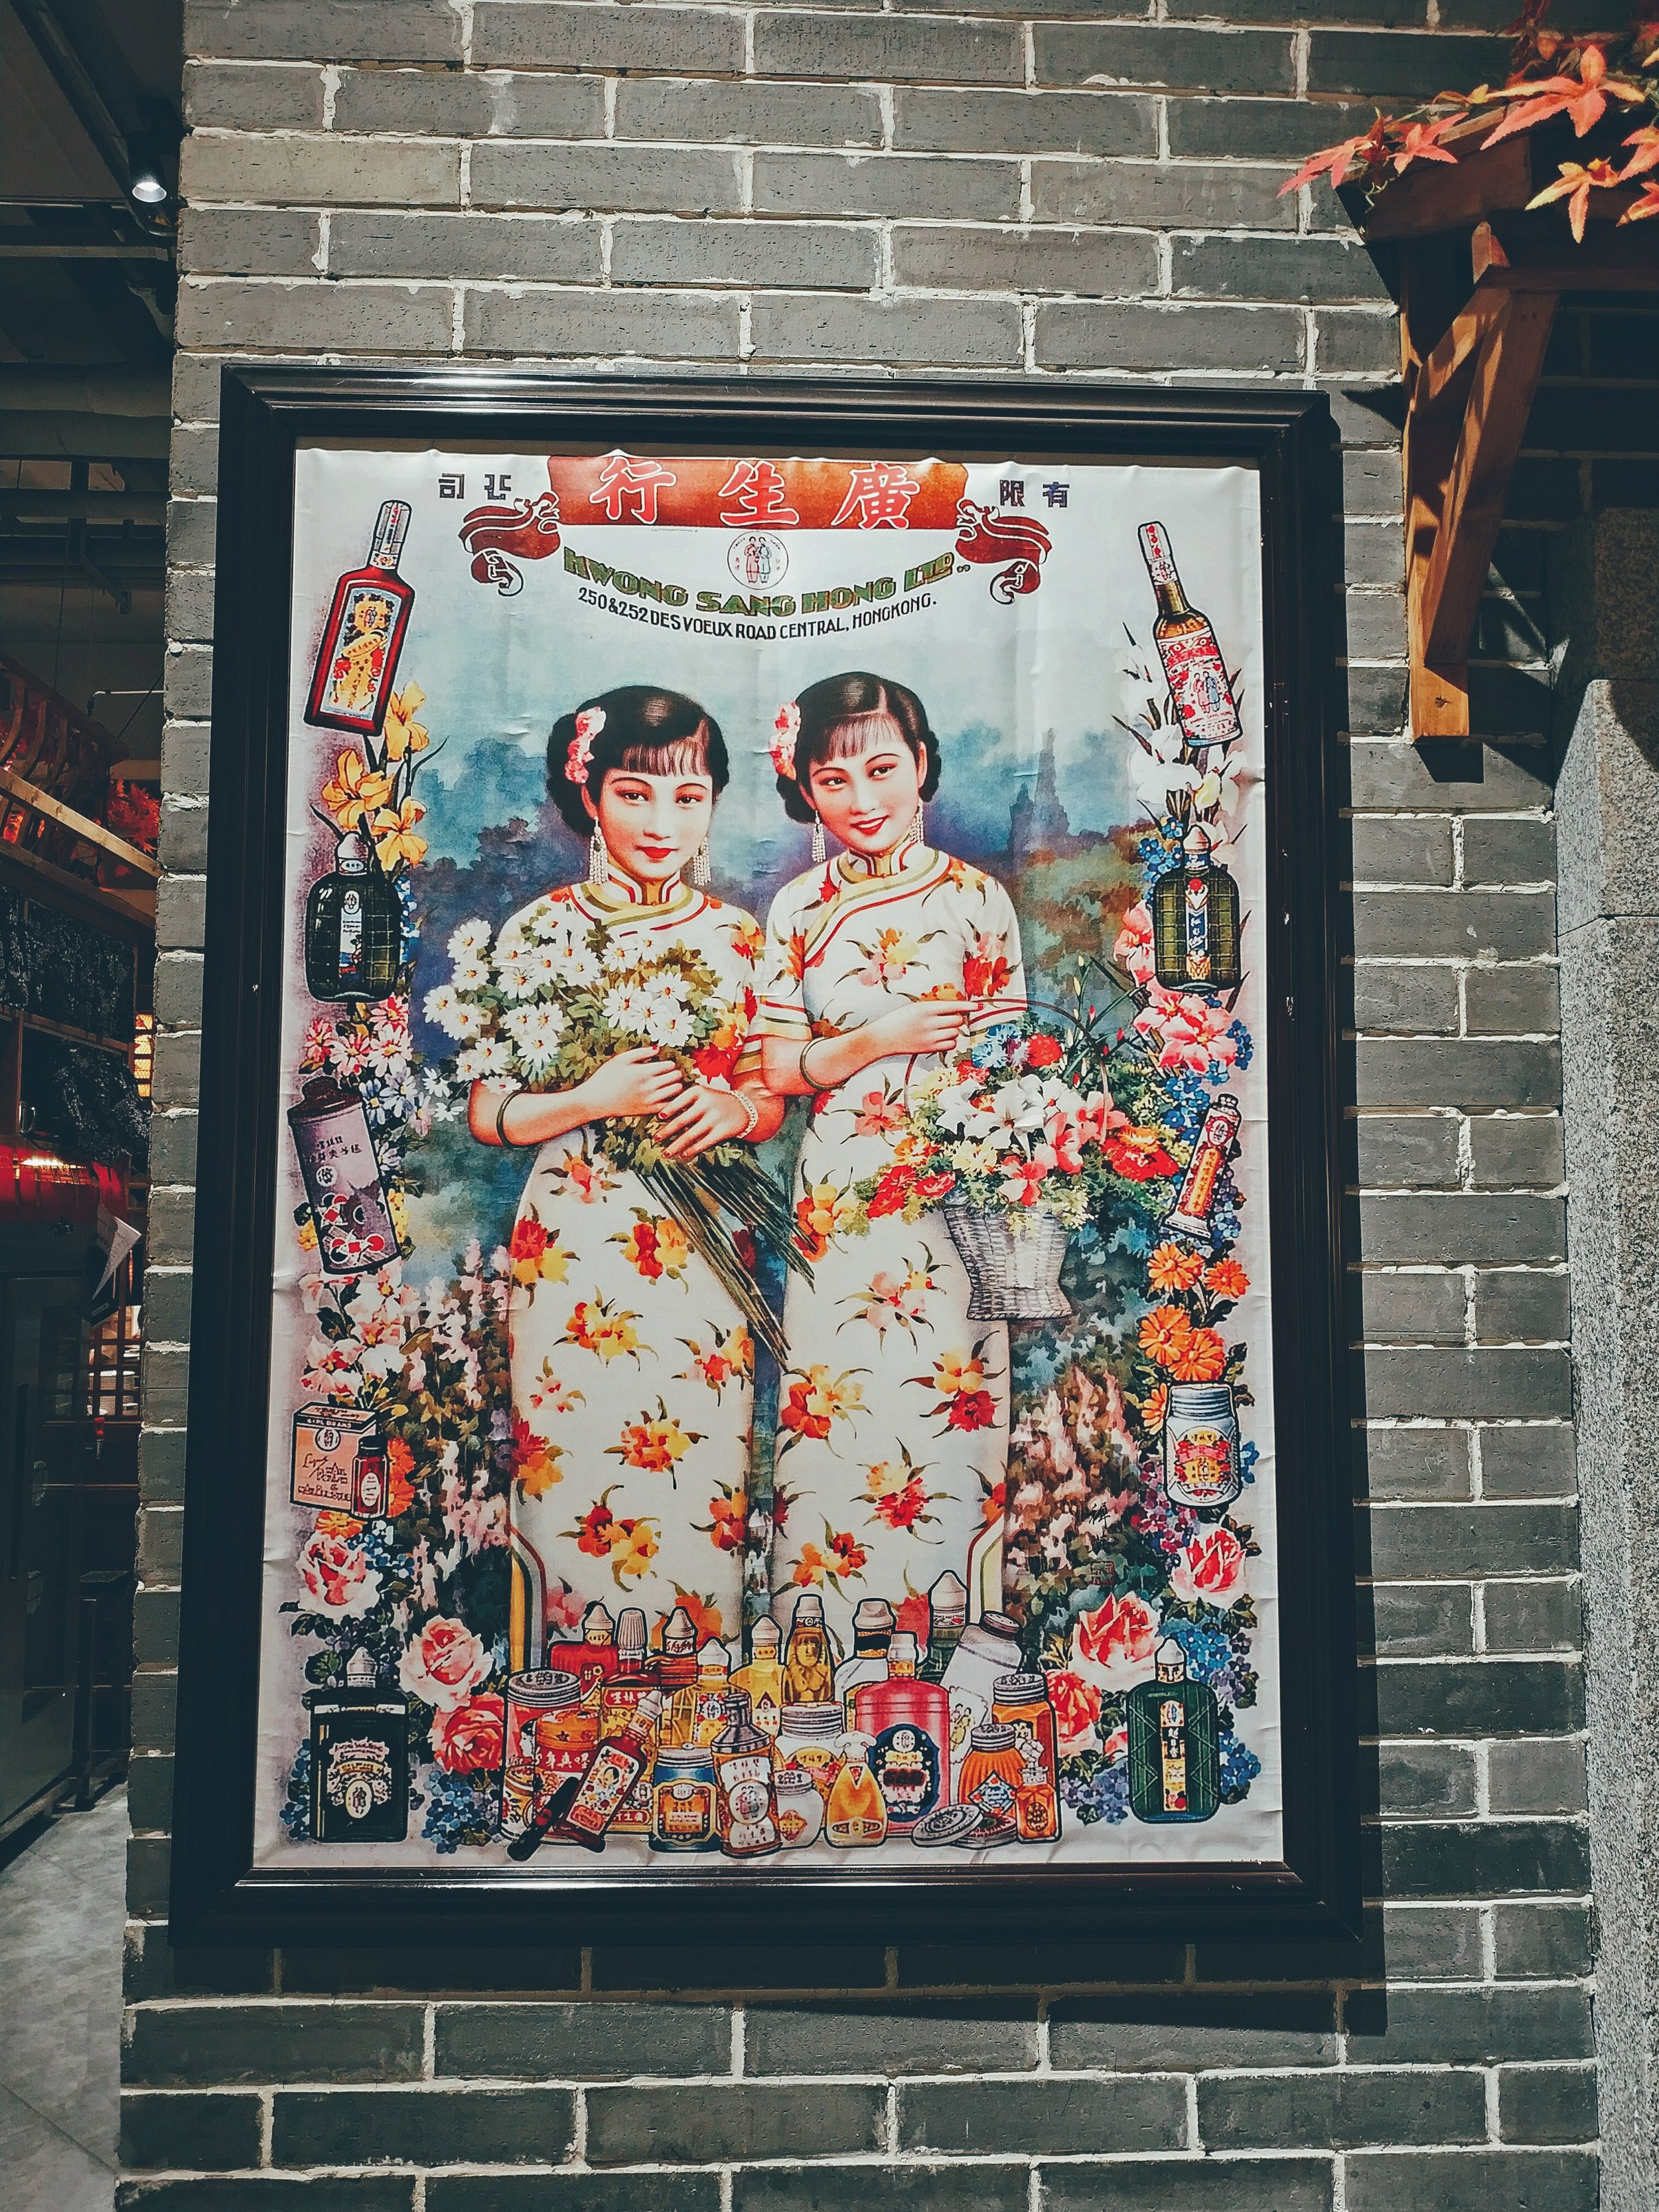 Chinese advertisement featuring qipao.